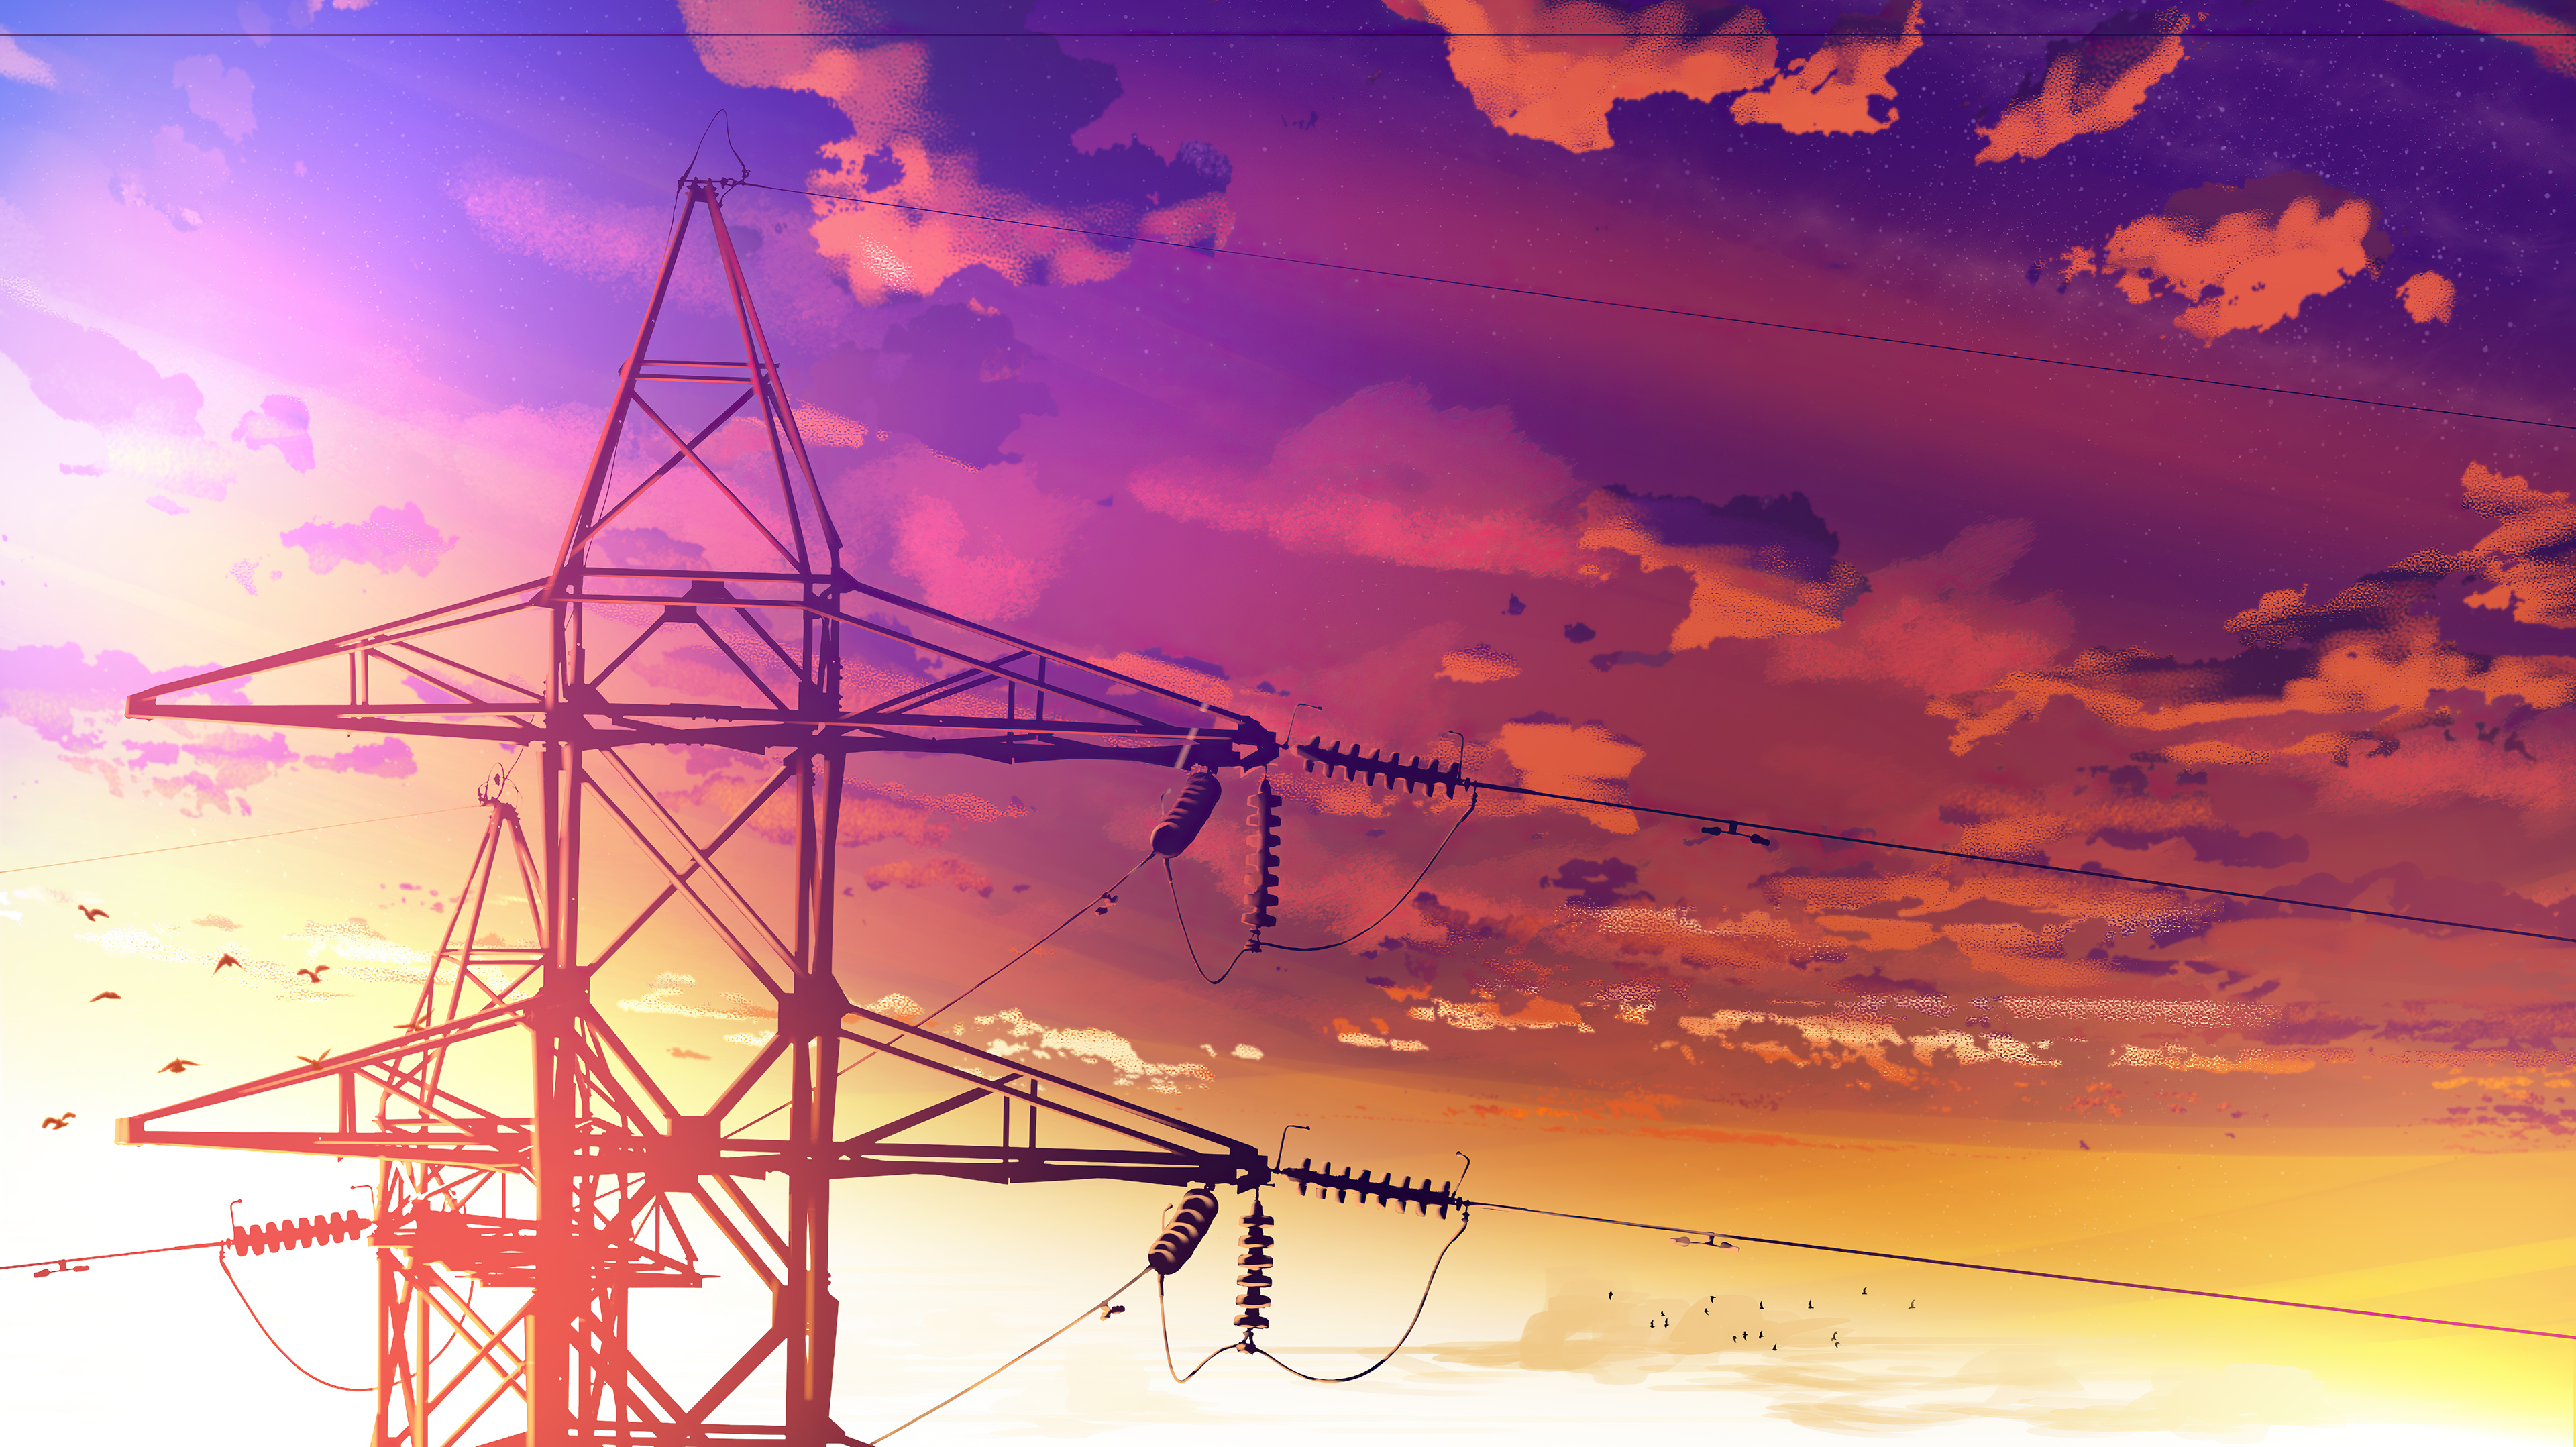 1920x1080 Powerlines Anime Scenery 4k Laptop Full Hd 1080p Hd 4k Wallpapers Images Backgrounds Photos And Pictures